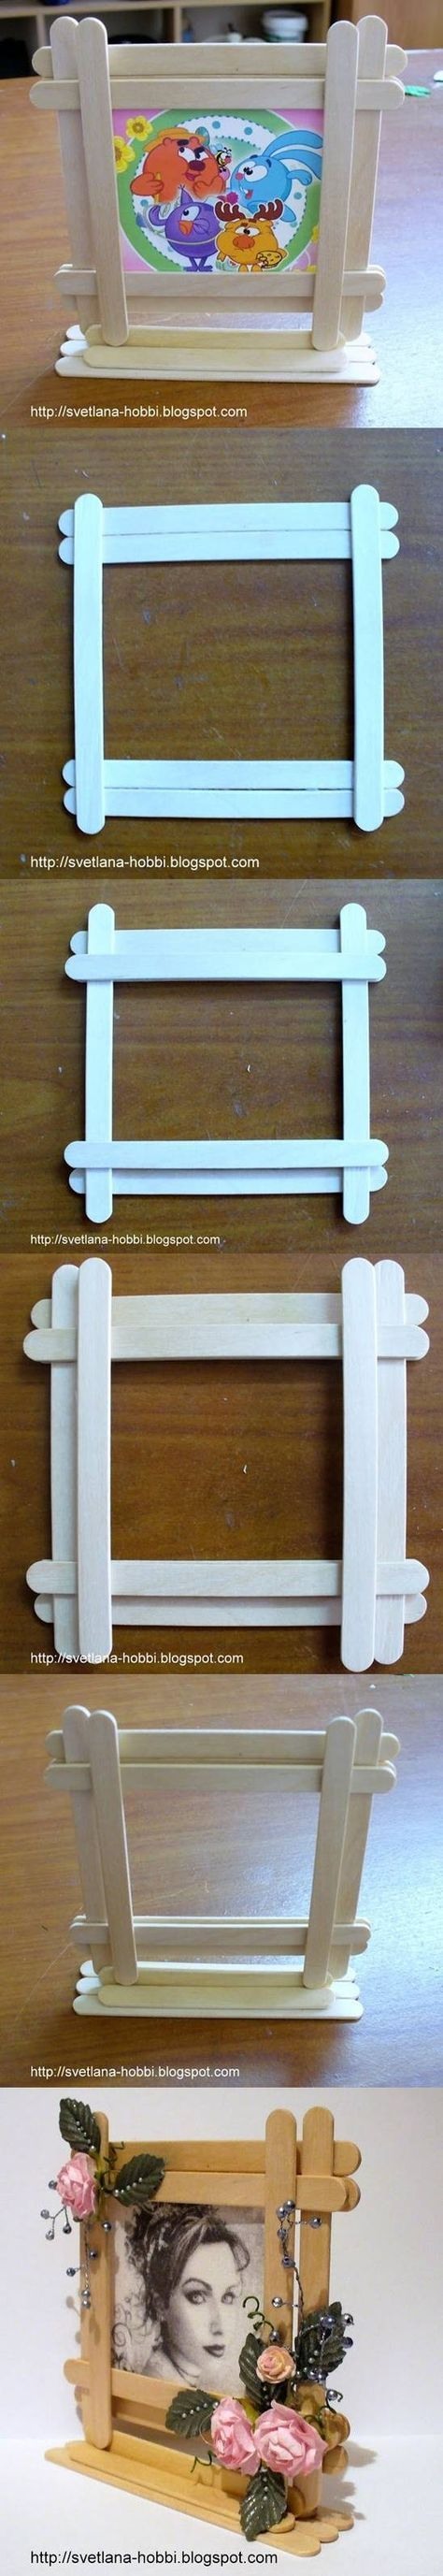 Pin by muimui on 試してみたいこと pinterest easy craft and